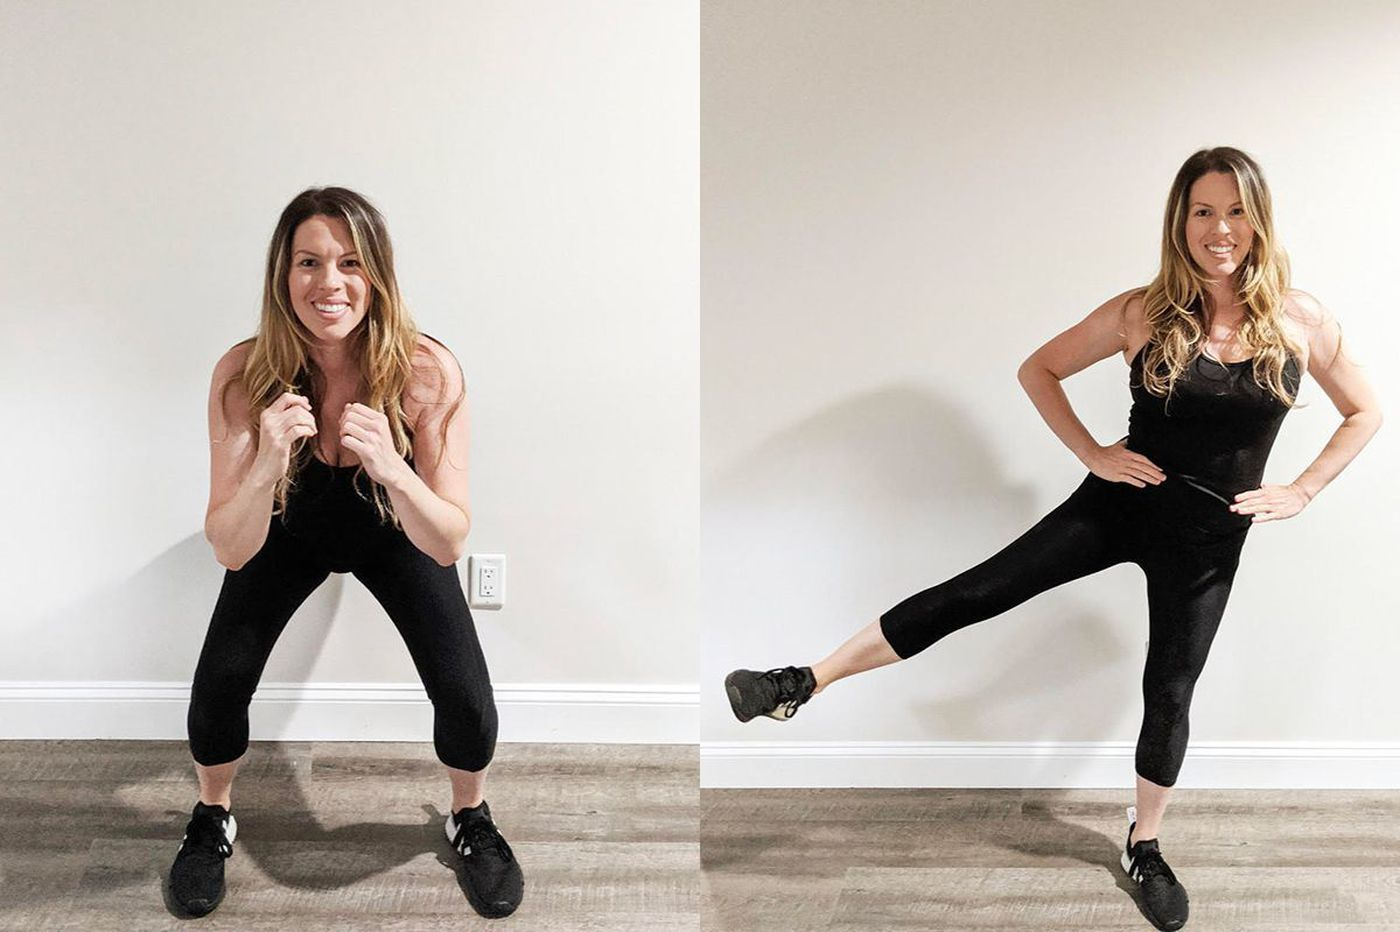 3 simple exercises to increase circulation